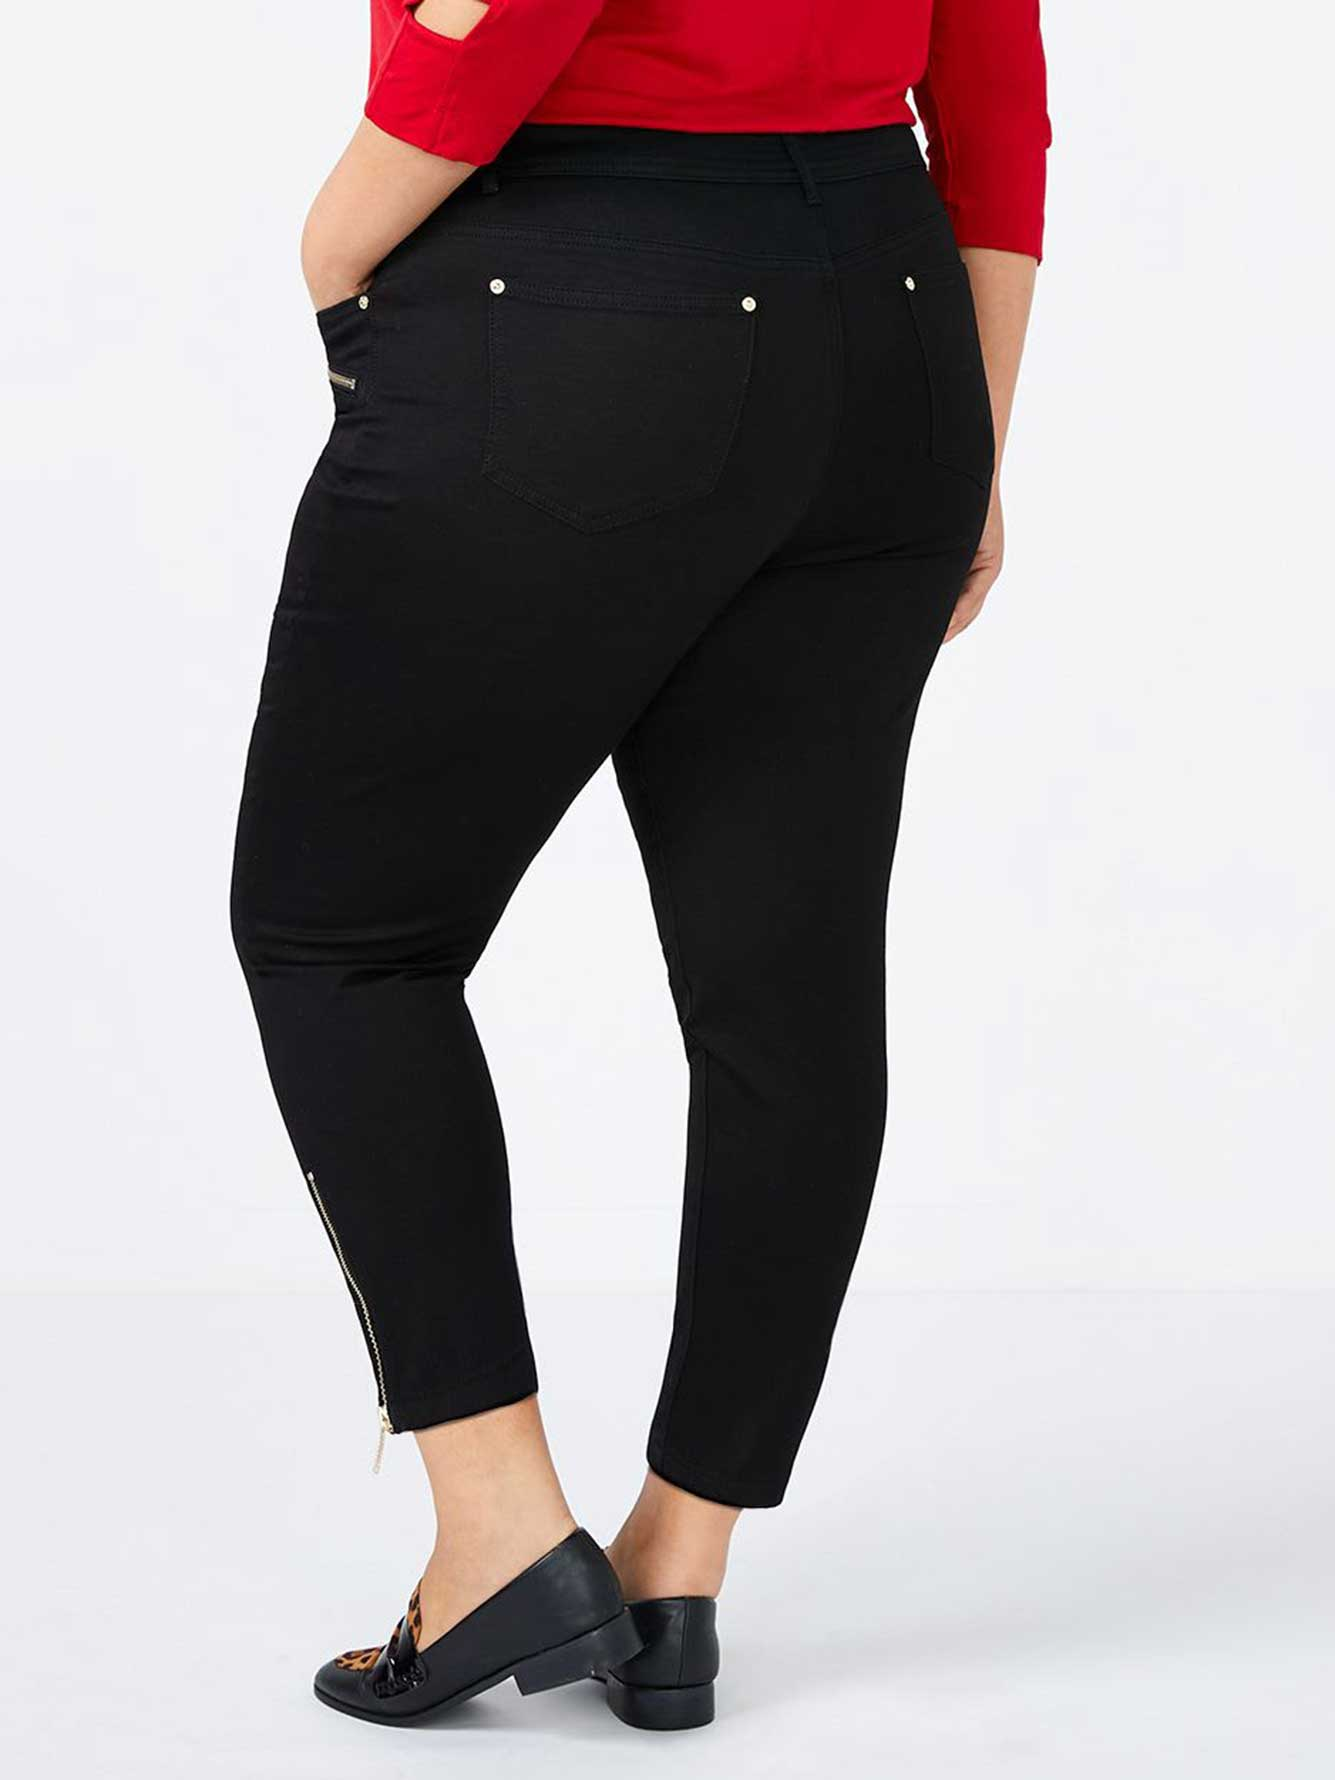 Petite Slightly Curvy Fit High Waisted Skinny Jean - d/c JEANS